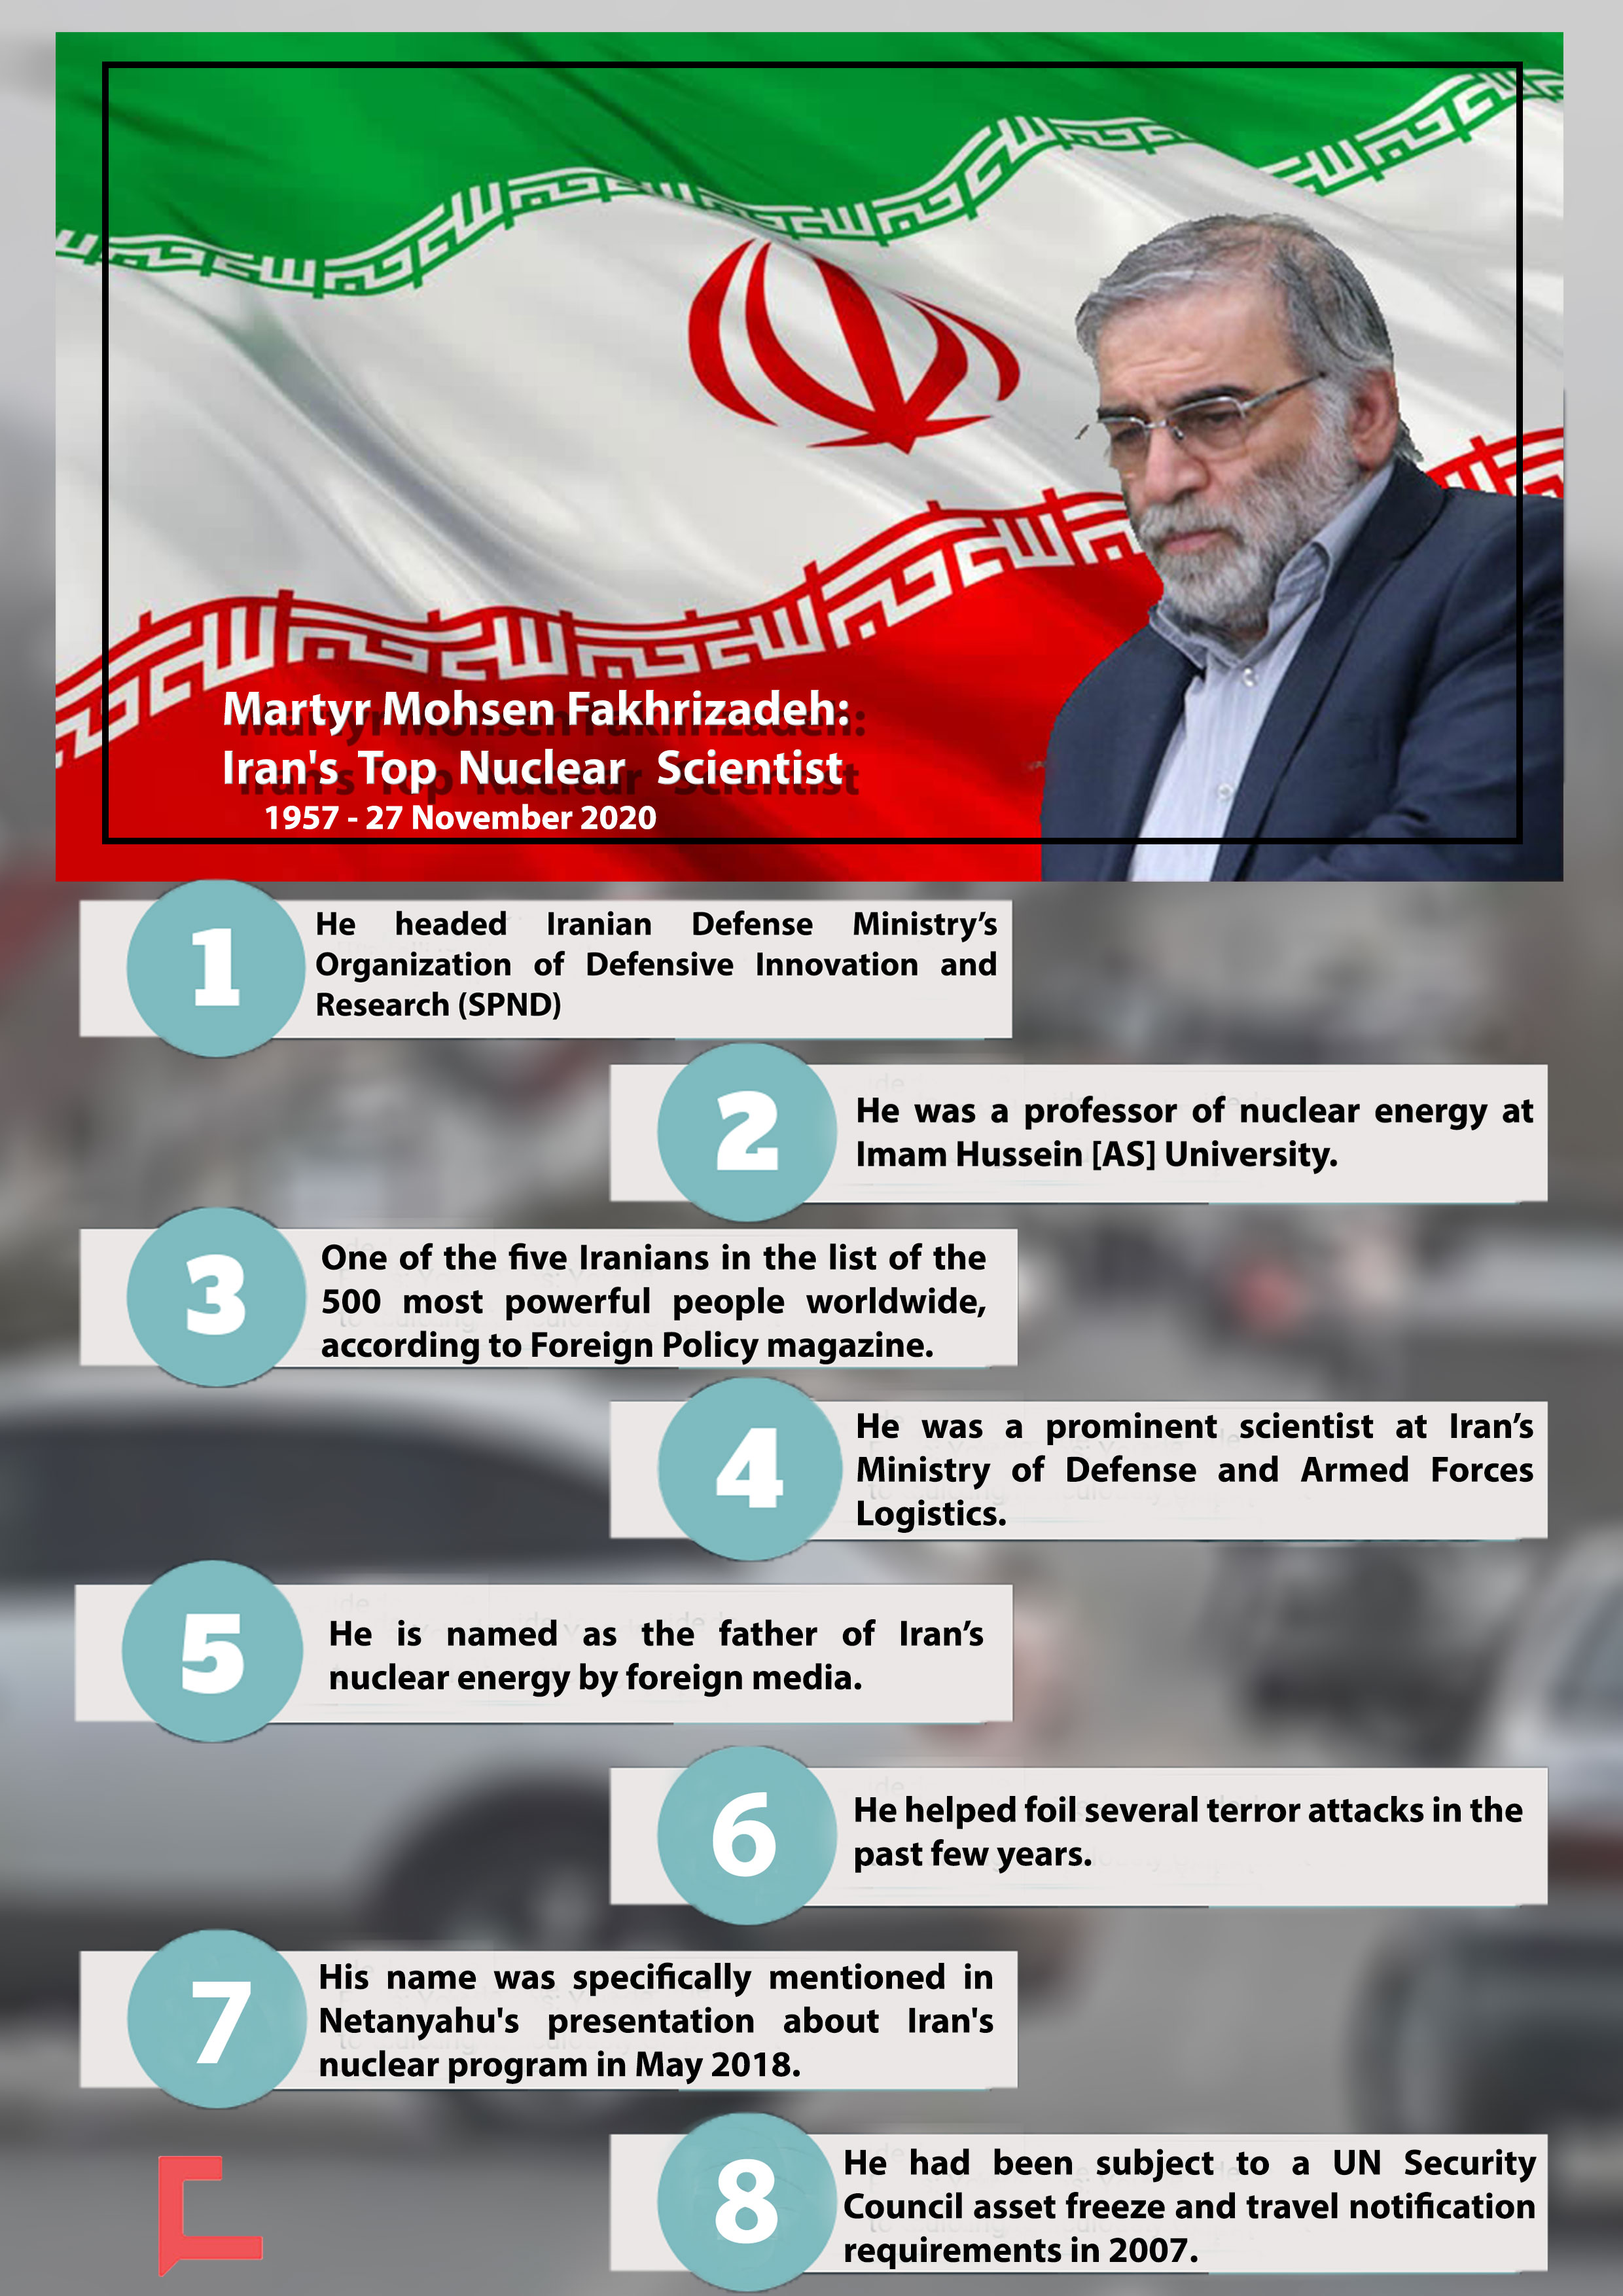 Who Is Martyr Mohsen Fakhrizadeh?